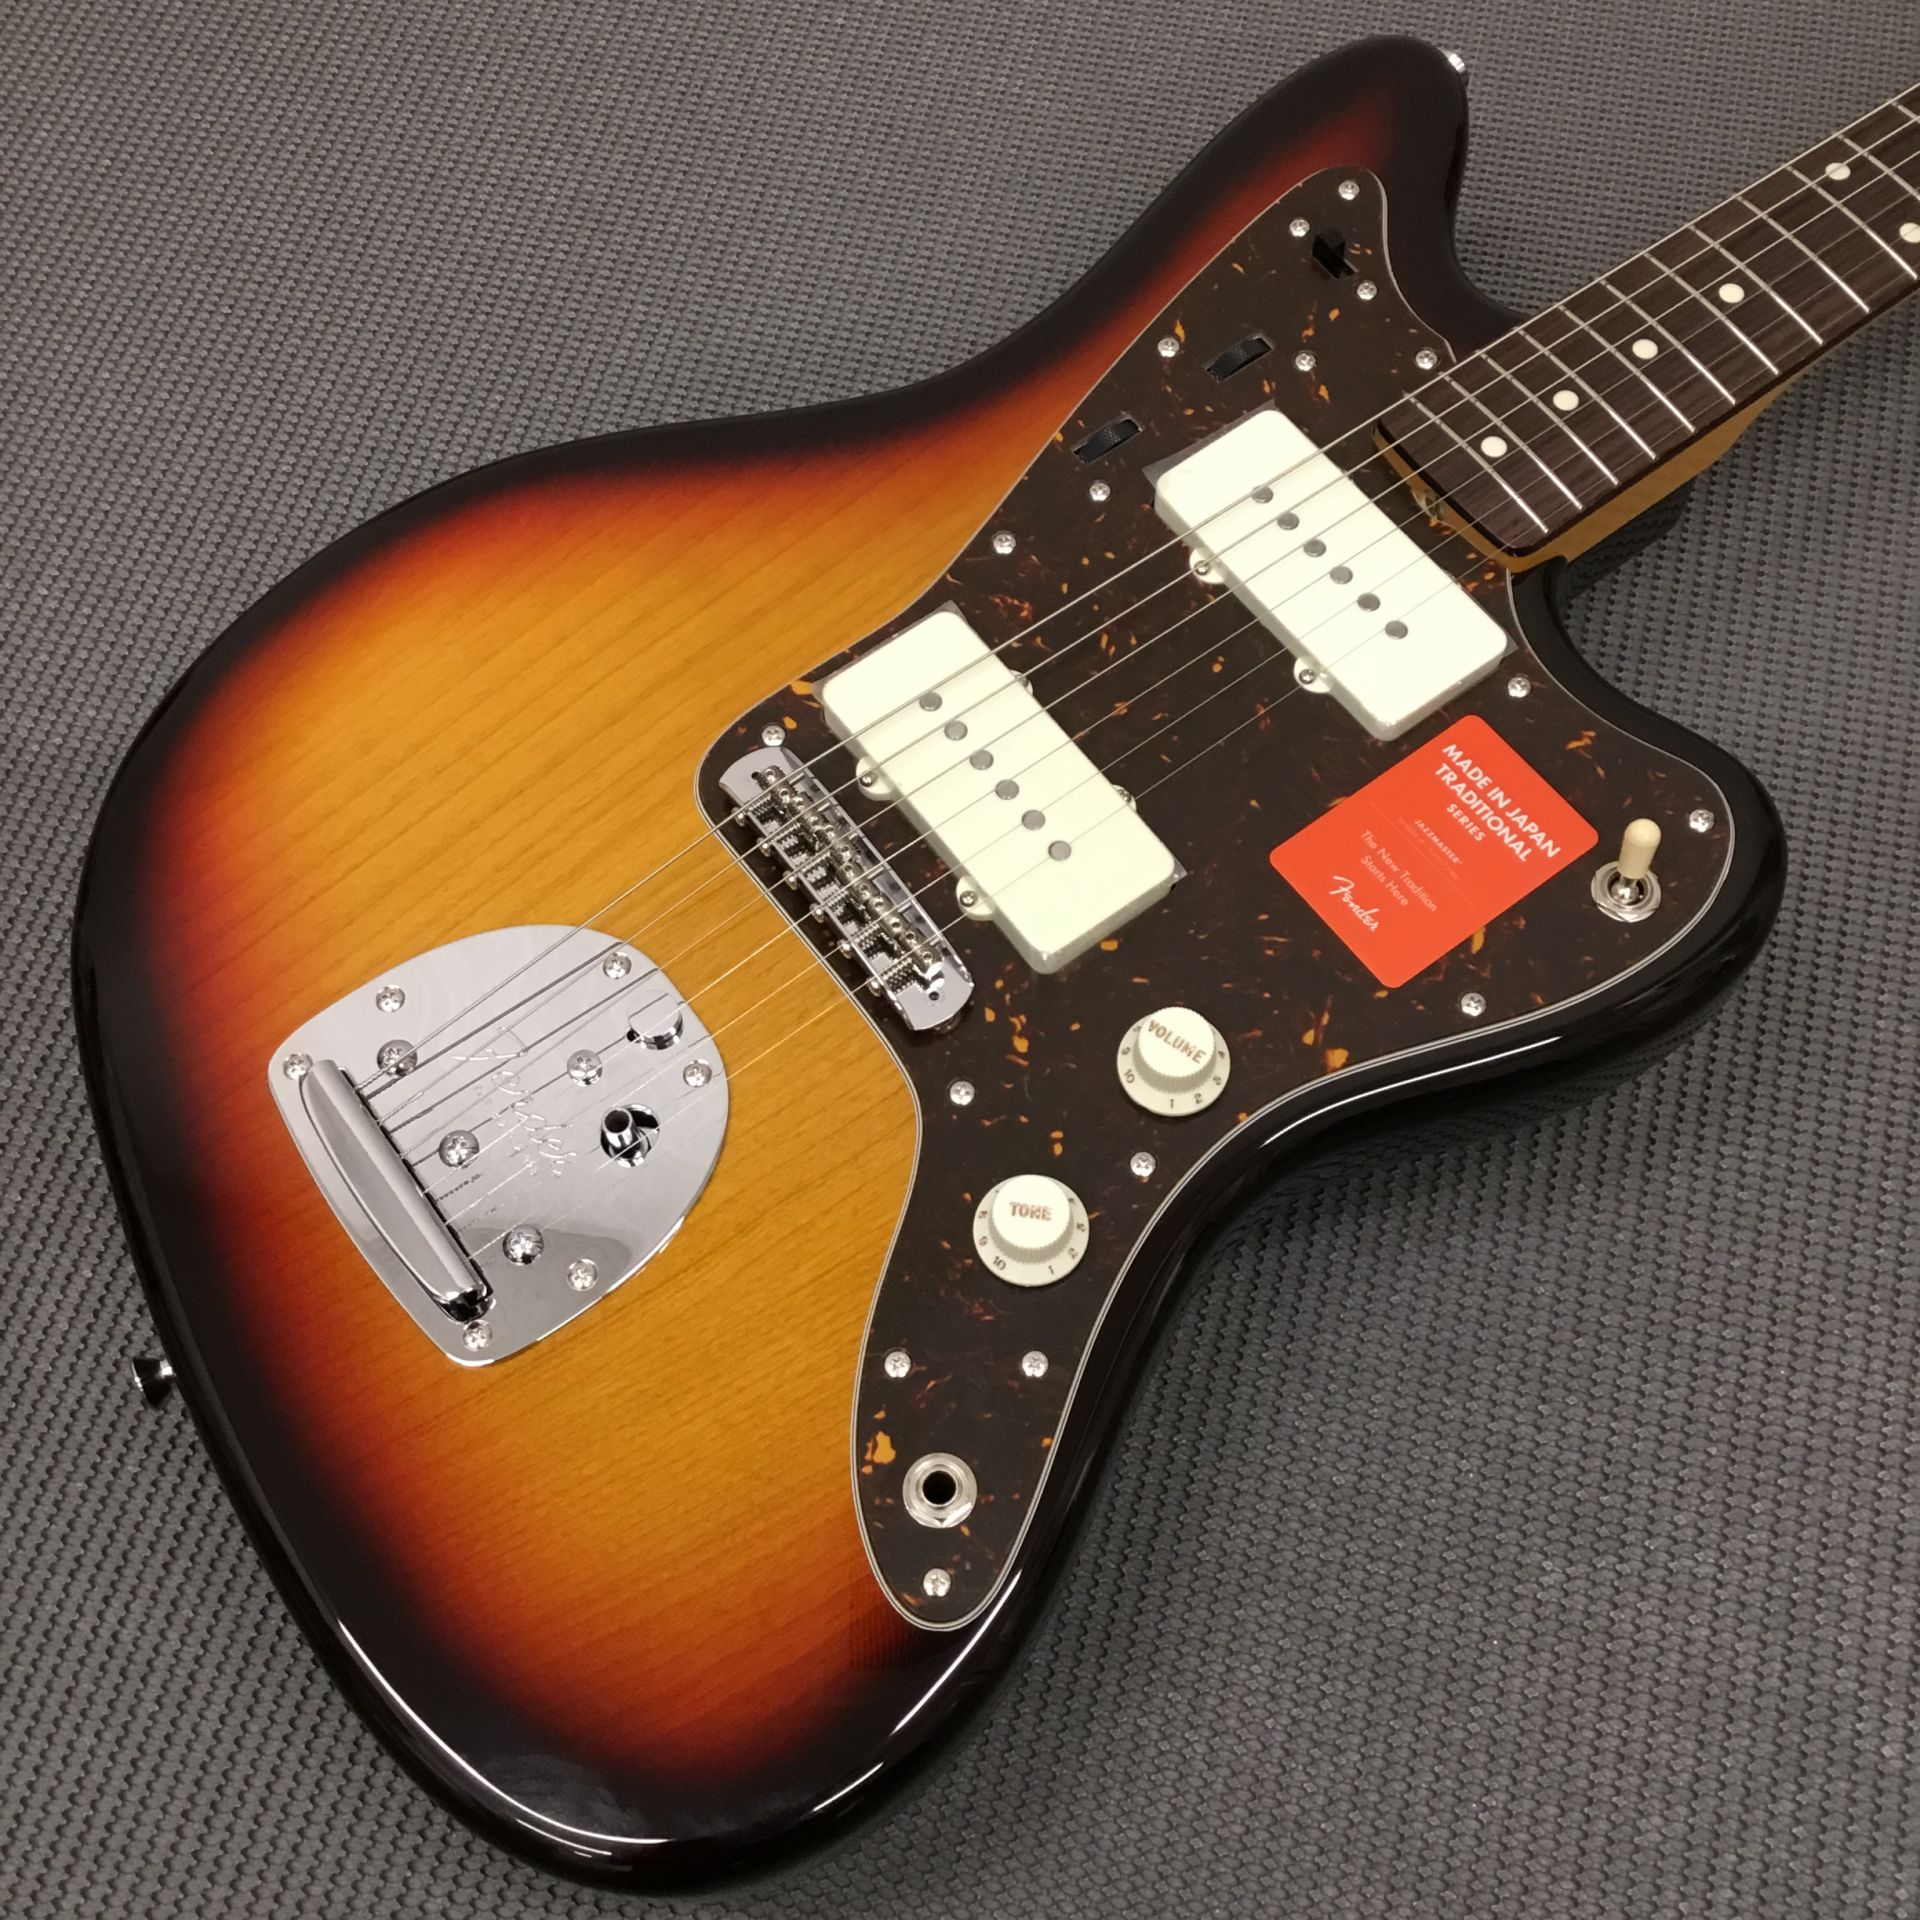 MADE IN JAPAN TRADITIONAL 60S JAZZMASTER